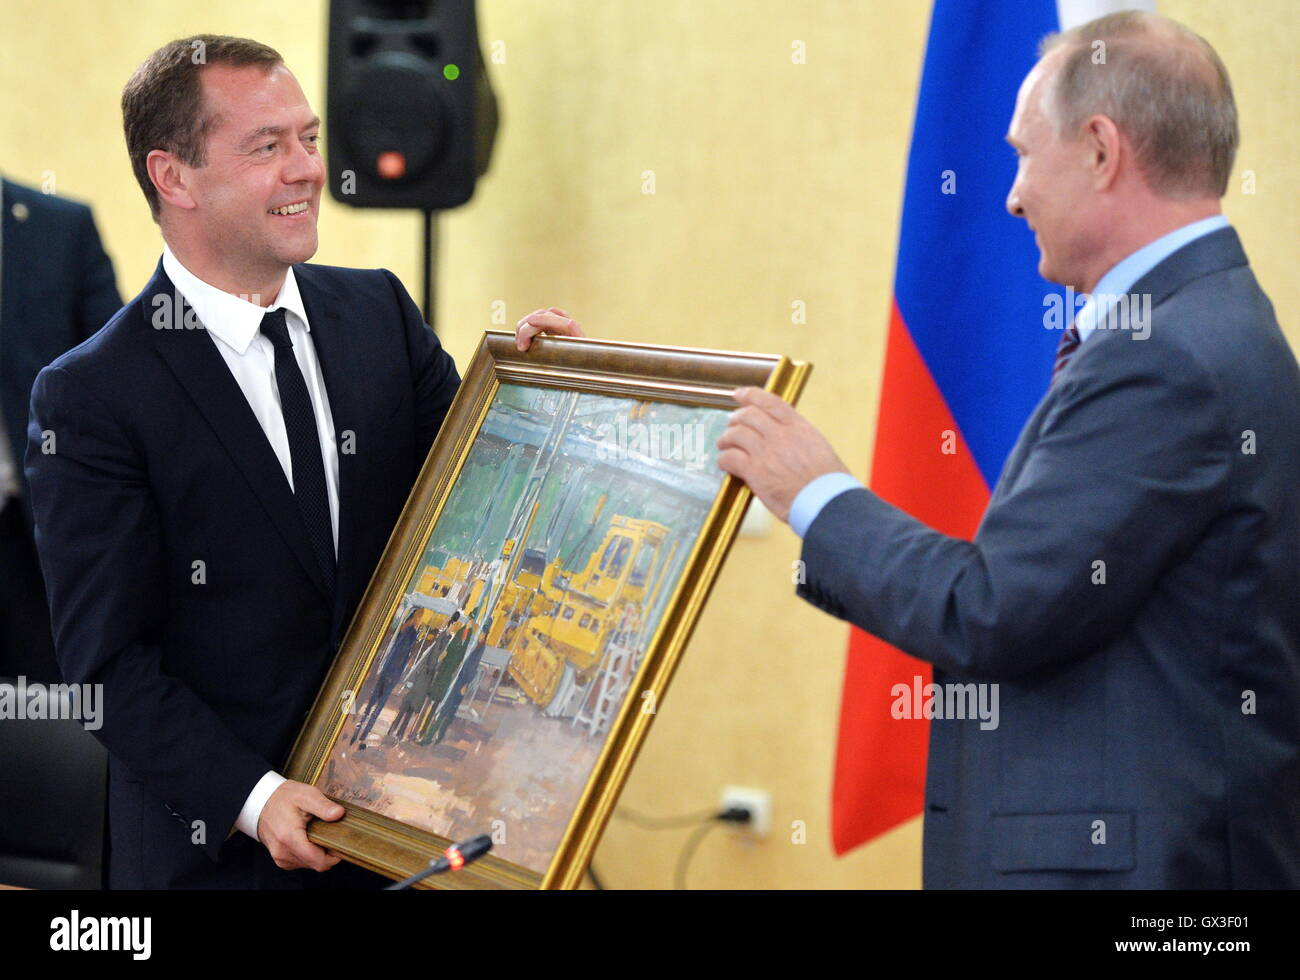 Crimea, Russia. 15th Sep, 2016. Russia's President Vladimir Putin (R) presents In the Workshop painting to Russia's - Stock Image